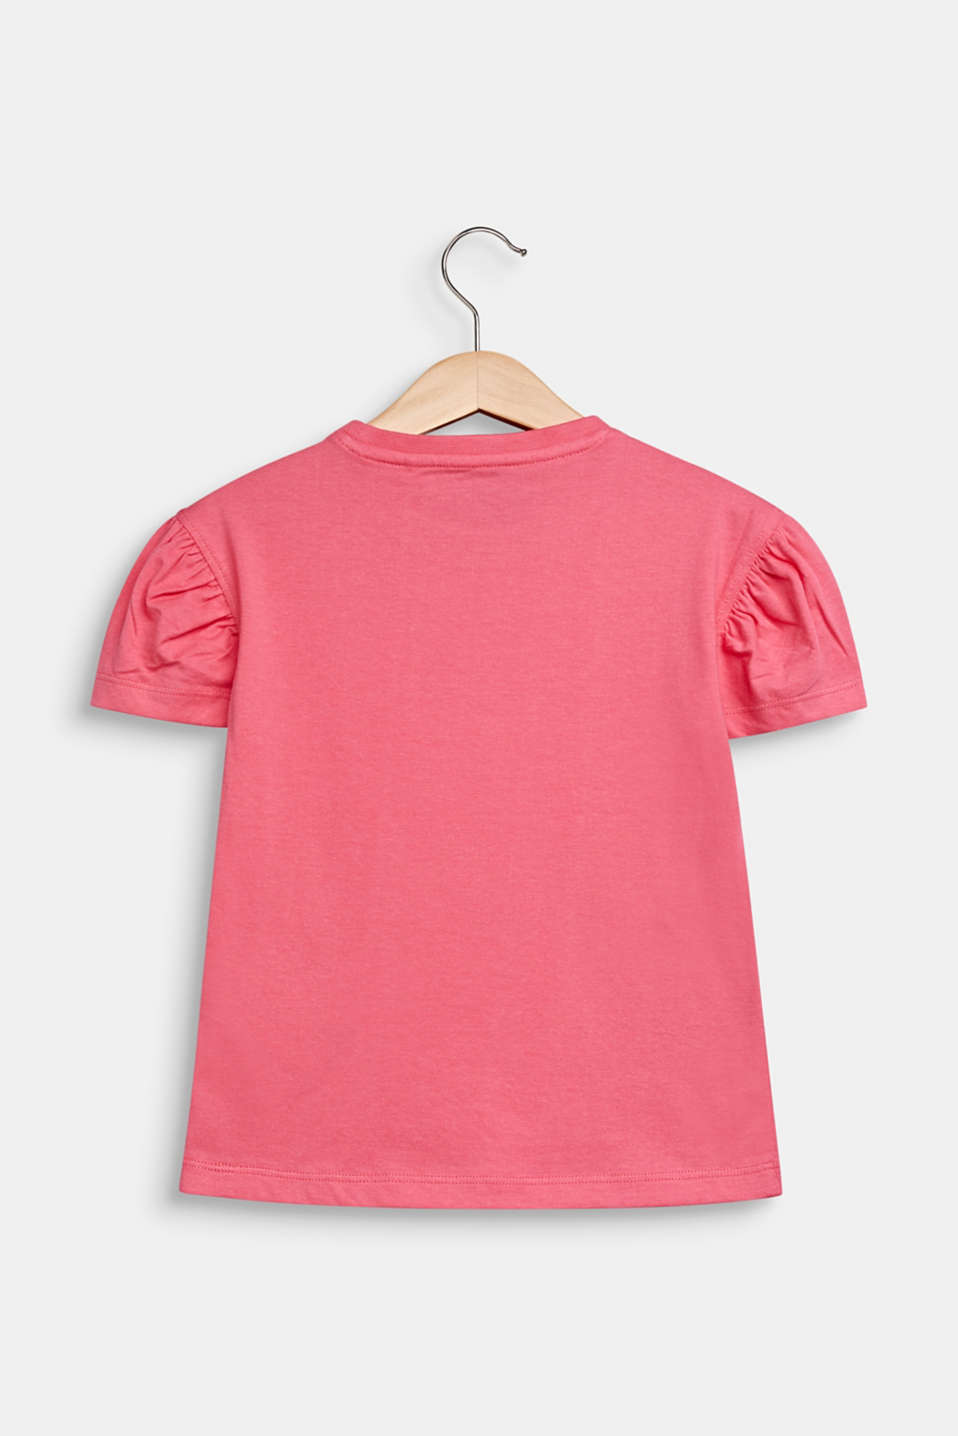 T-shirt with appliqués and puff sleeves, DARK PINK, detail image number 1